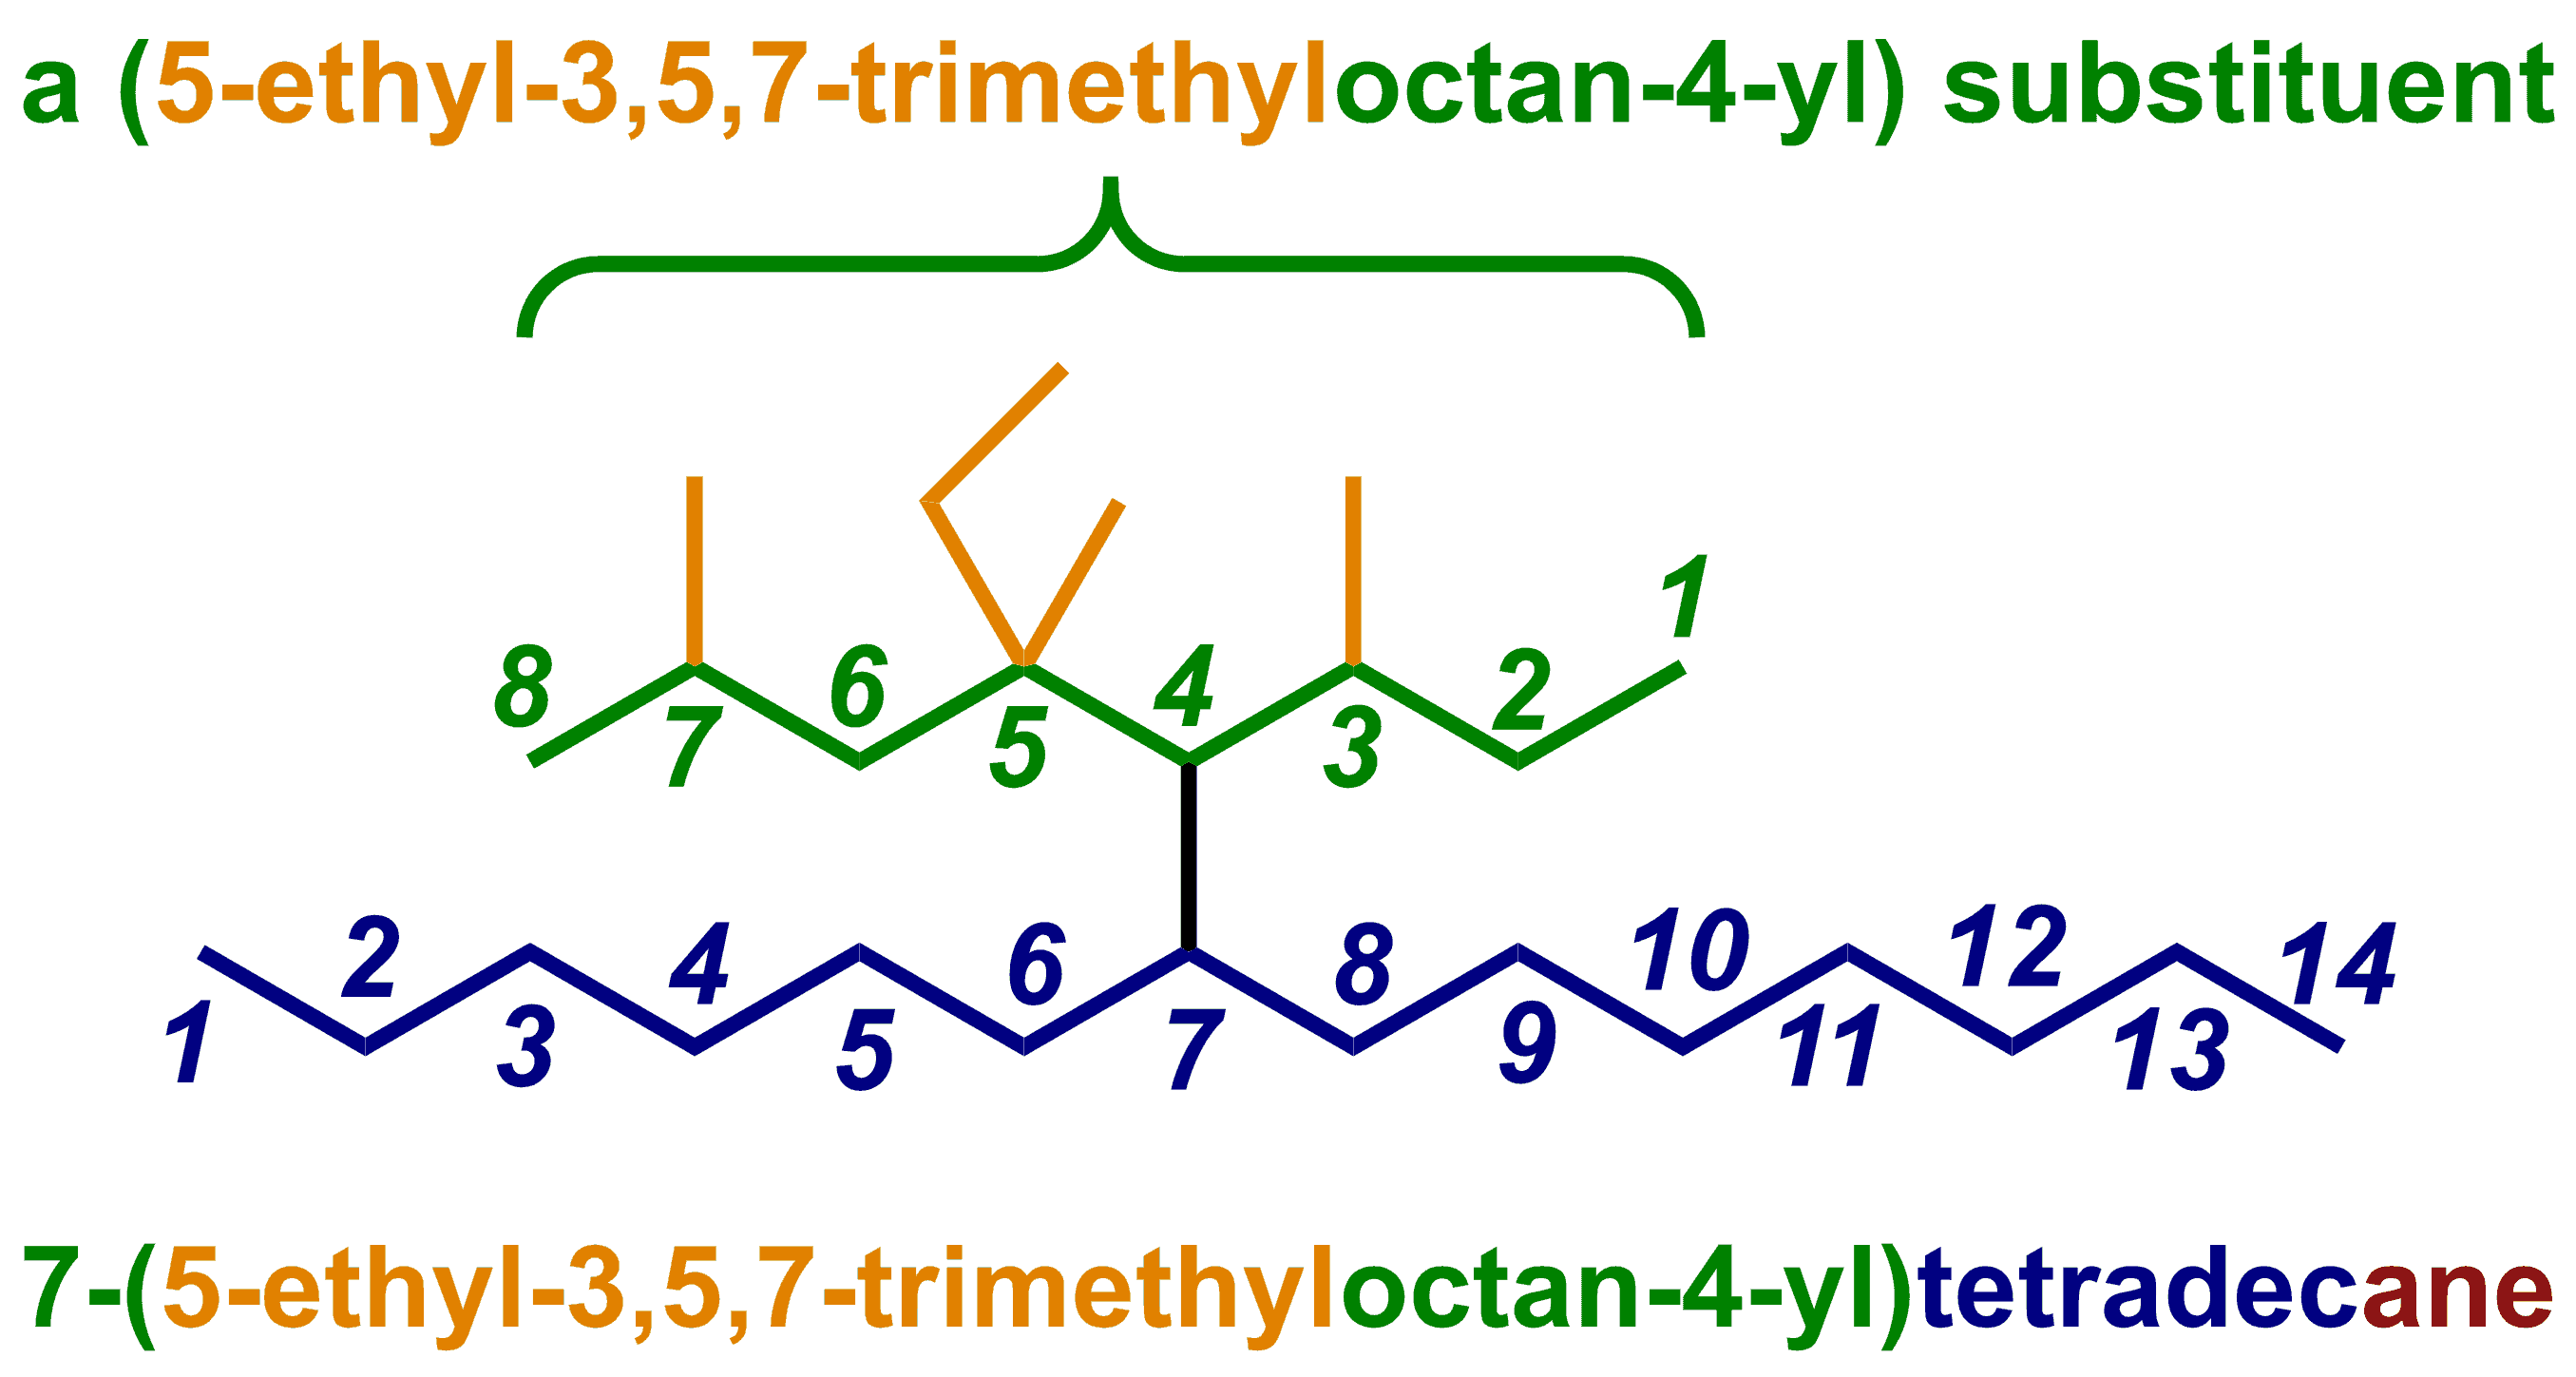 Branched-chain alkyl group